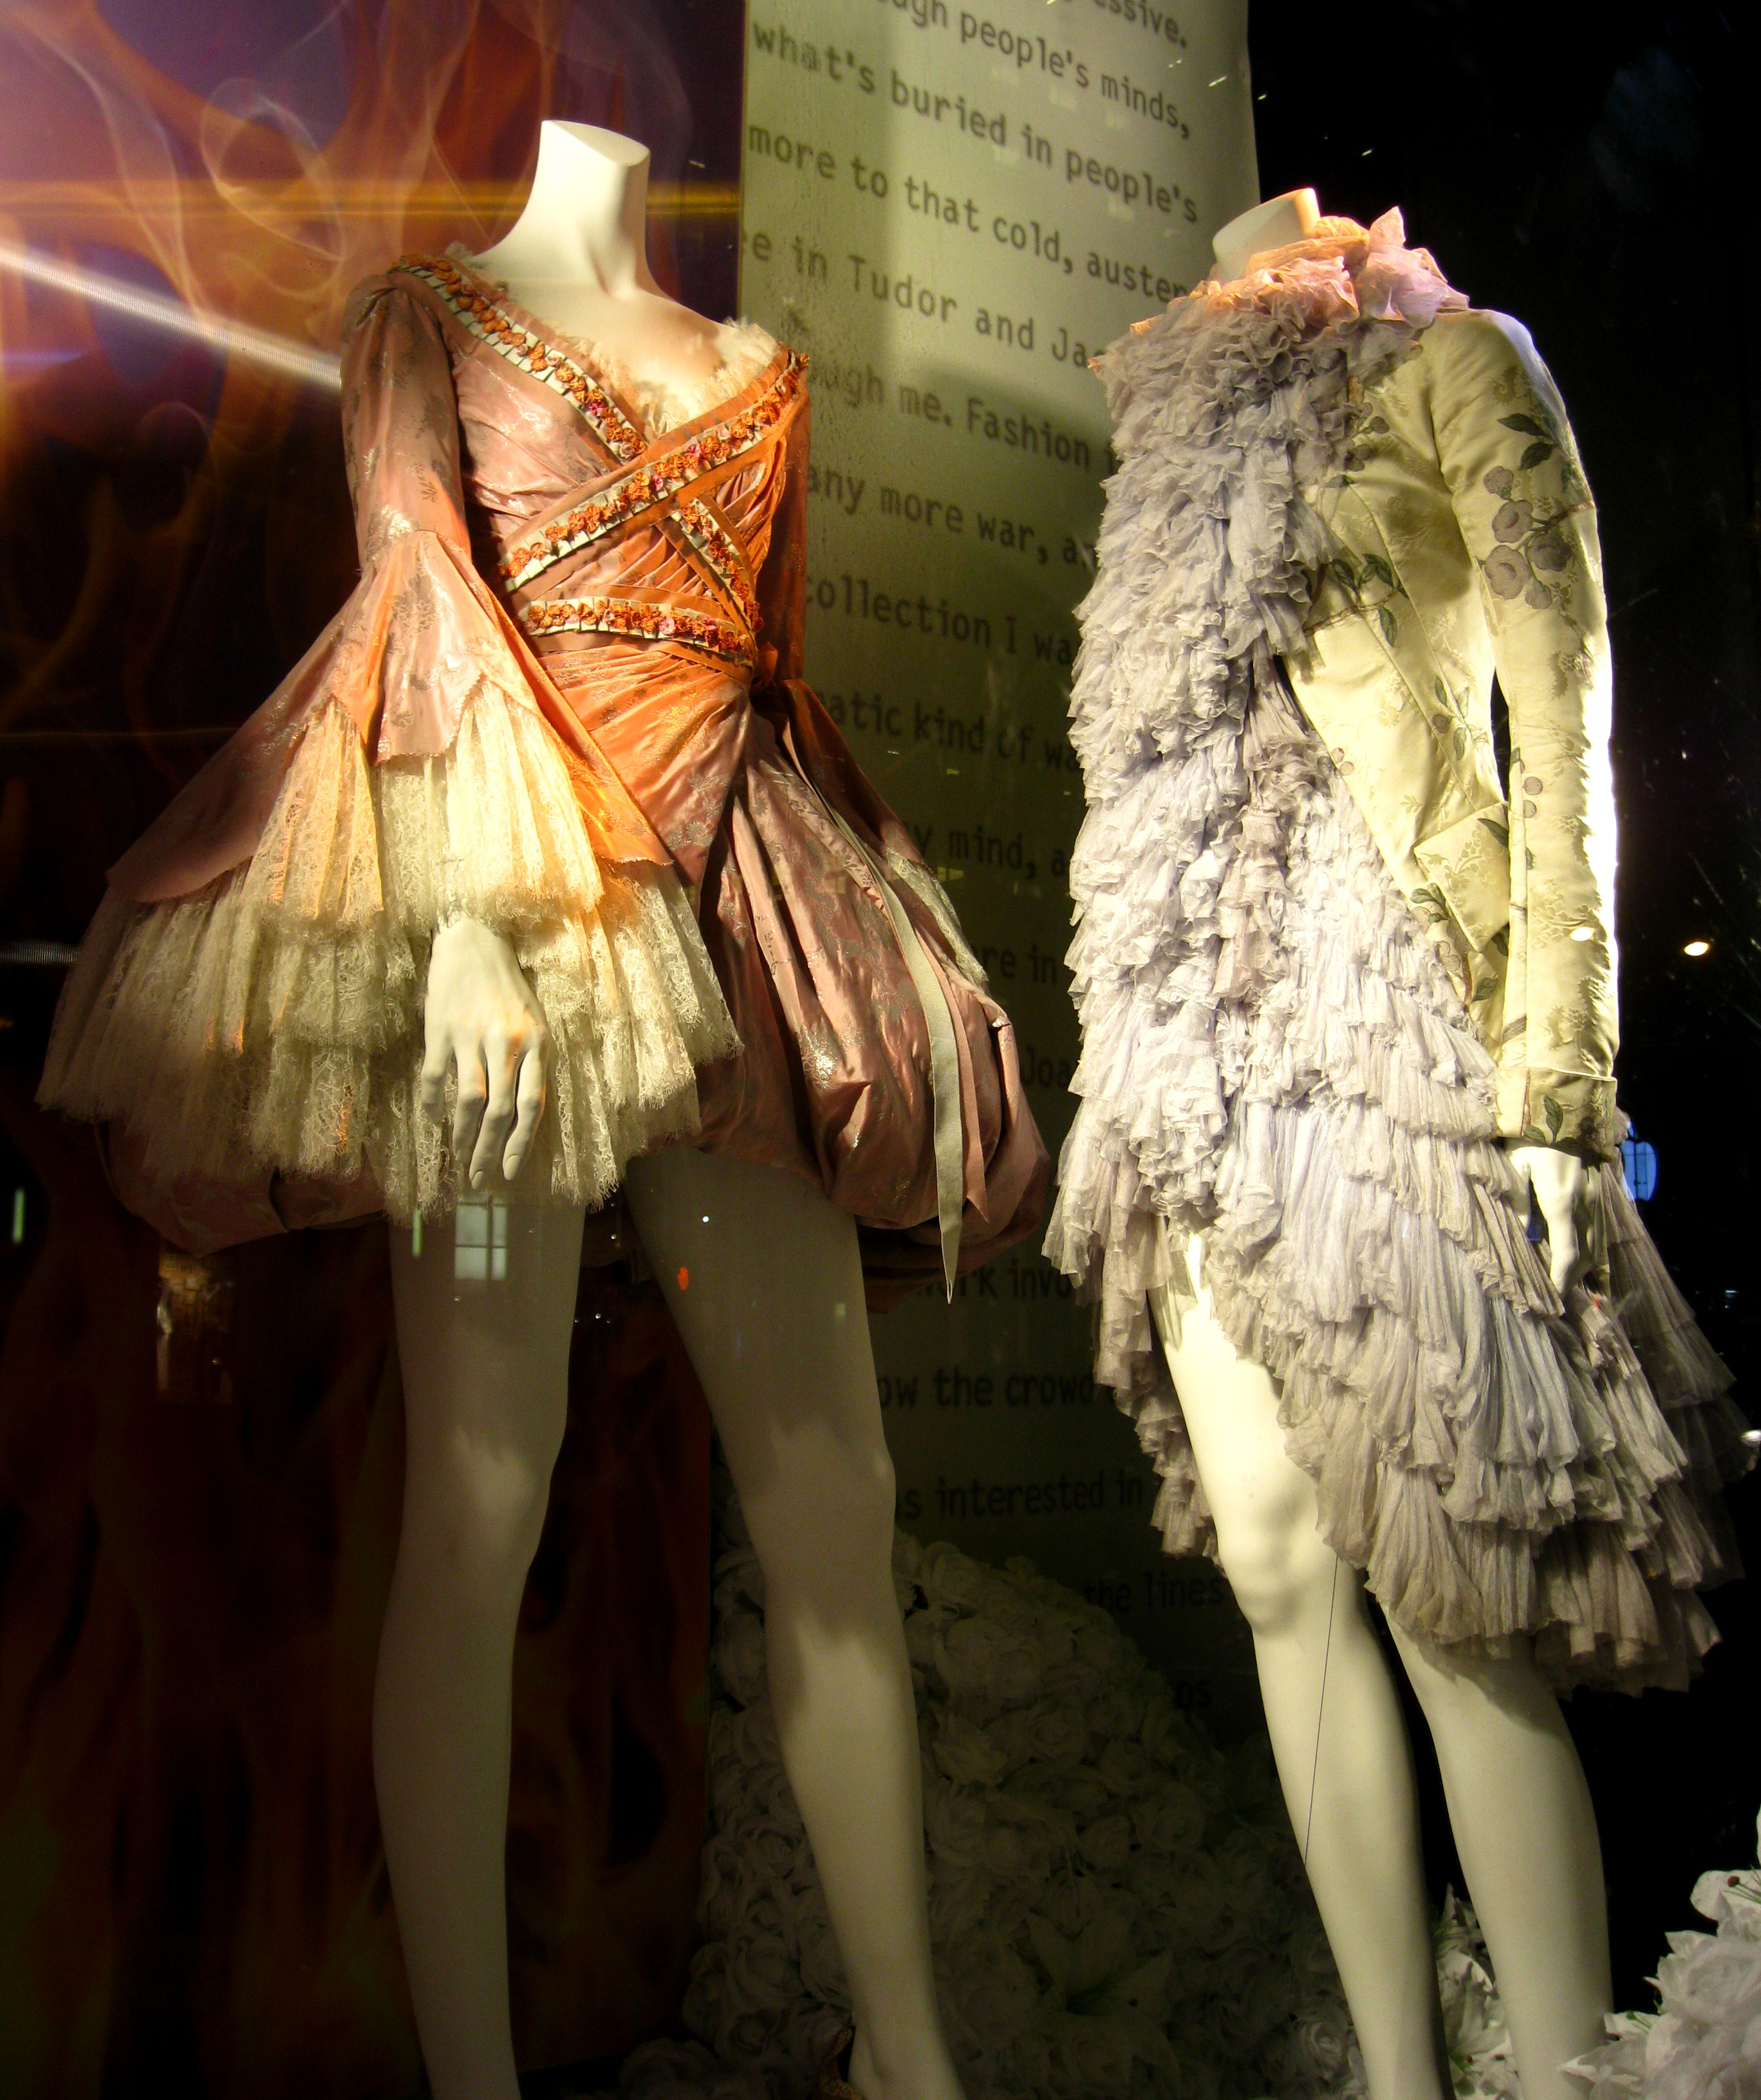 776881b08a35 Alexander McQueen Savage Beauty windows at Bergdorf Goodman ...